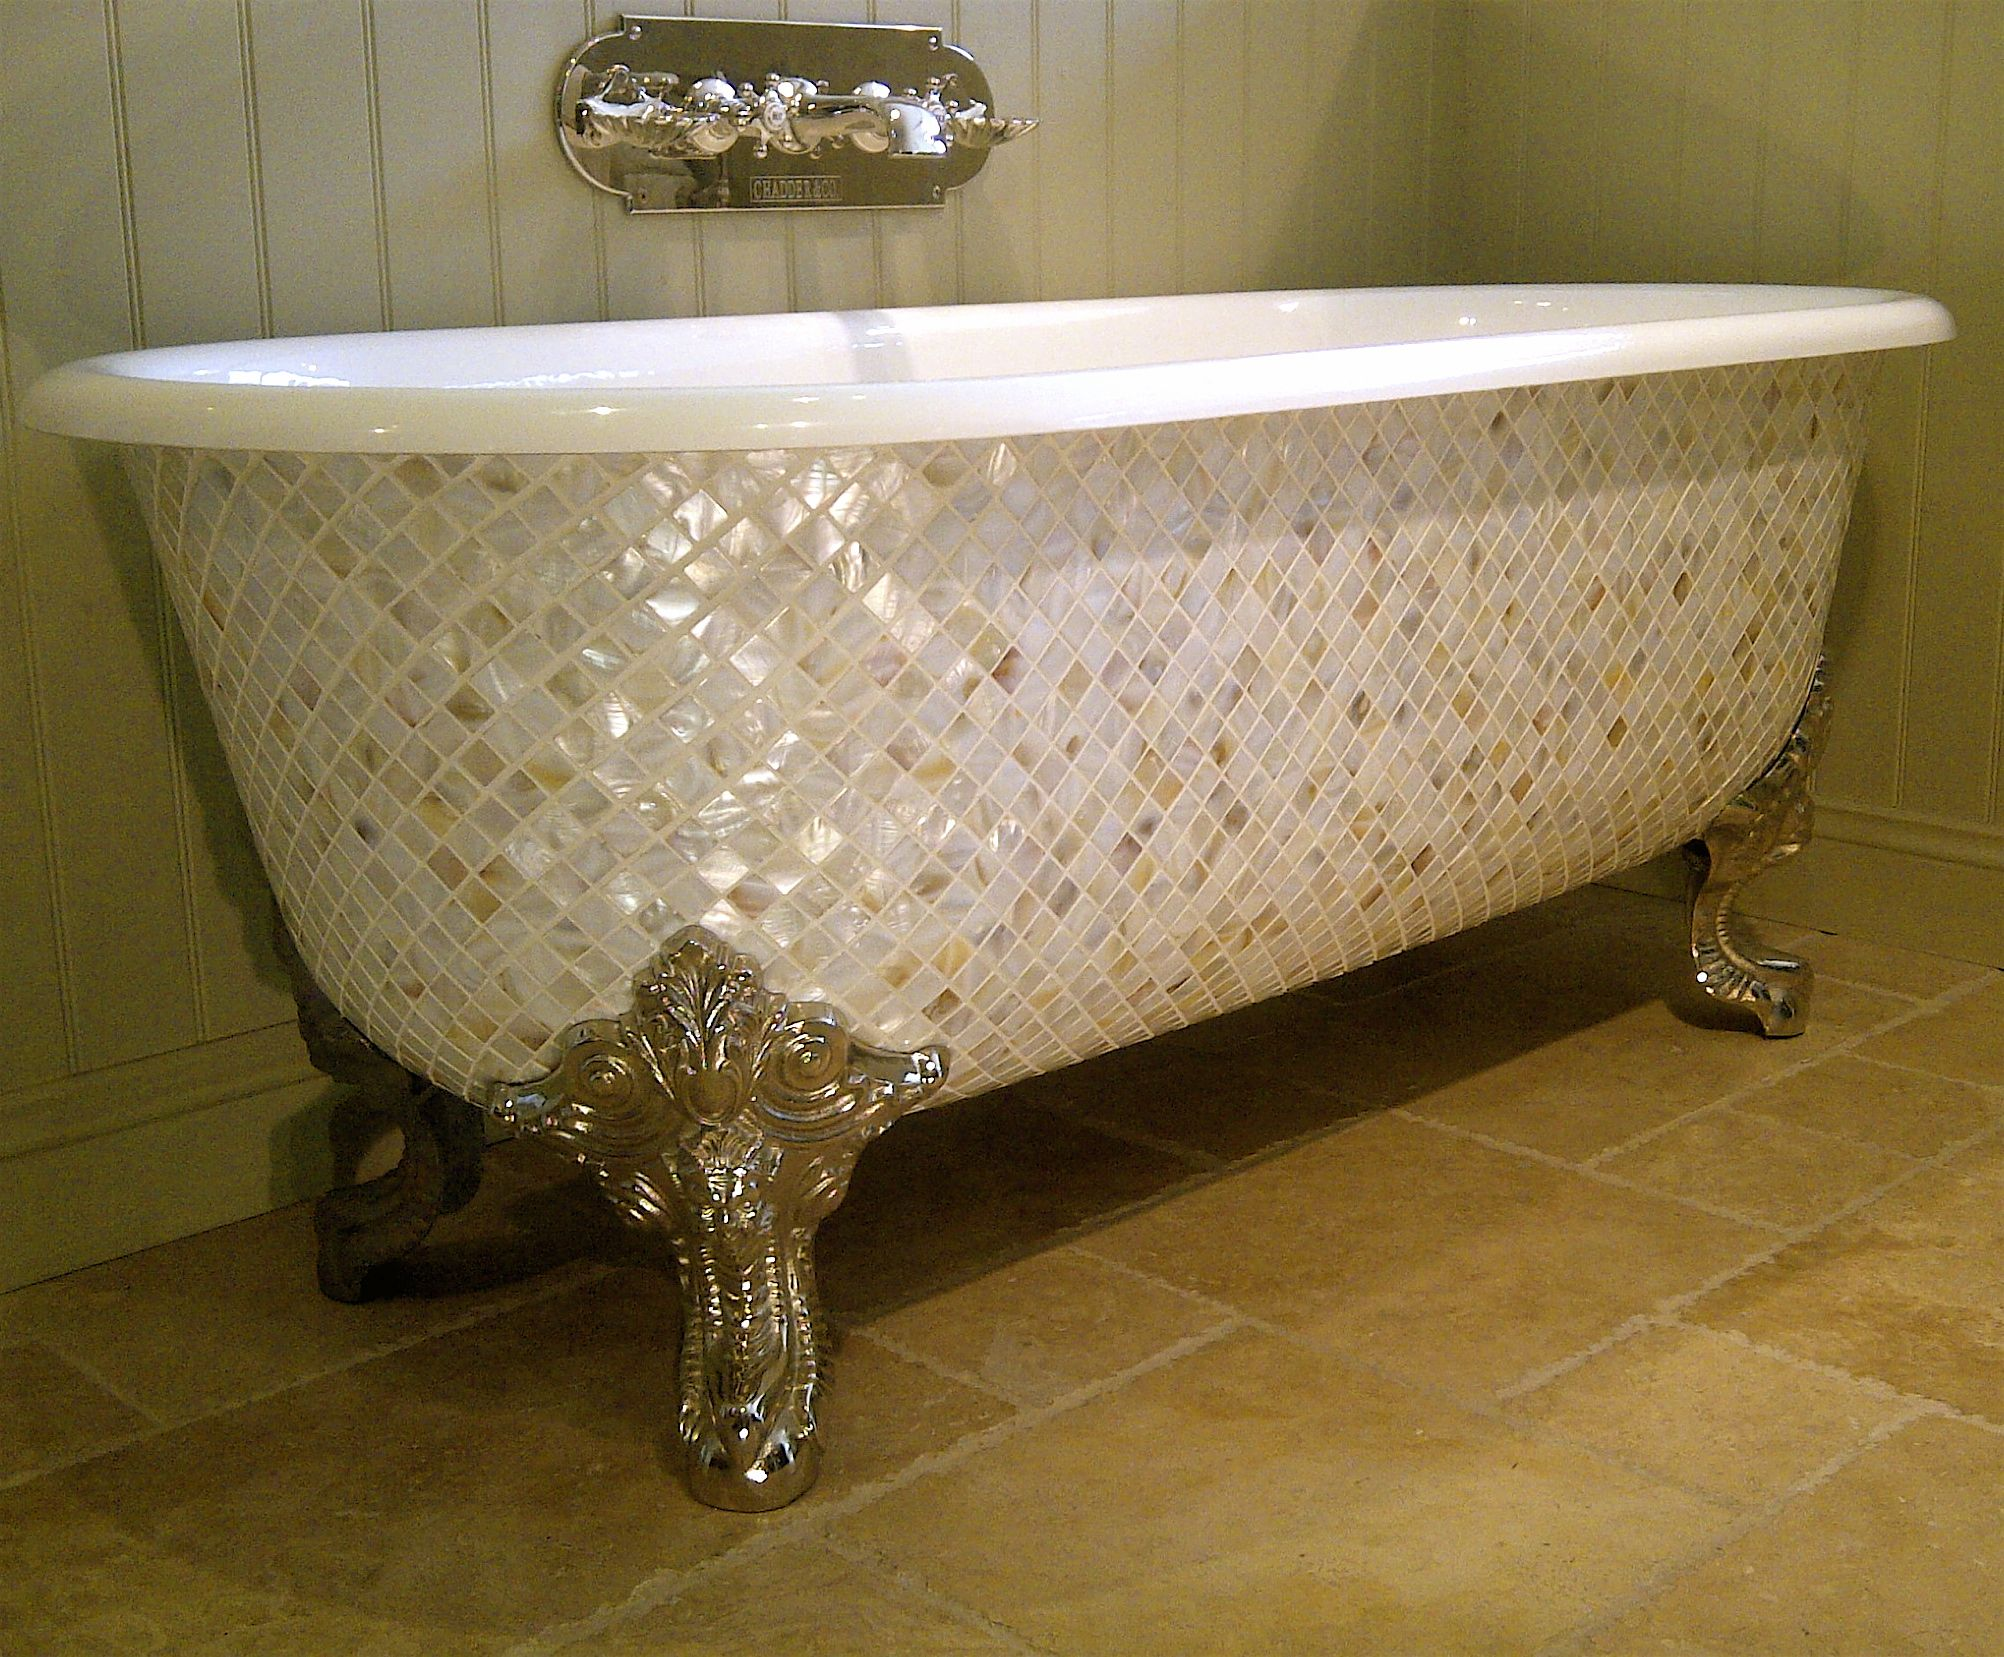 Mother of Pearl Mosaic Claw Foot Tub Stunning!!! | Dream Home ...